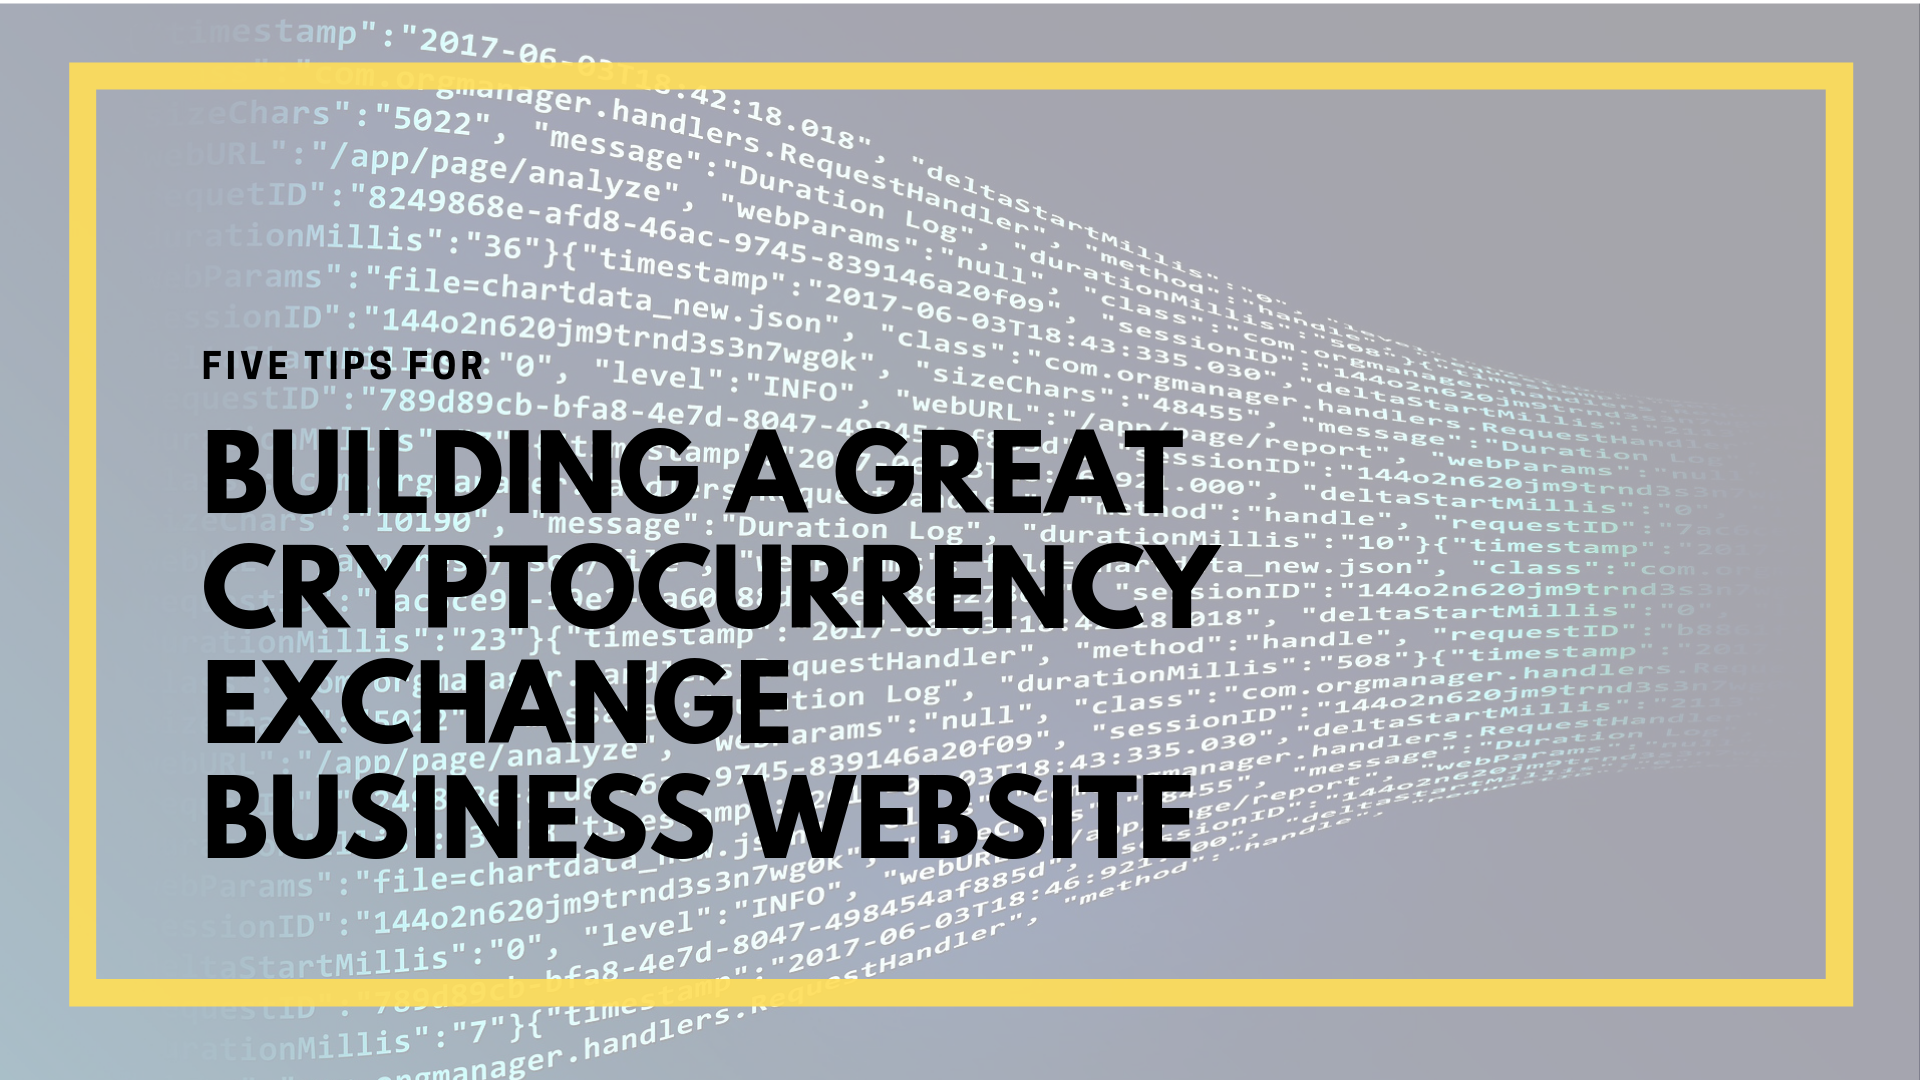 How can i setup an business account at cryptocurrency exchange